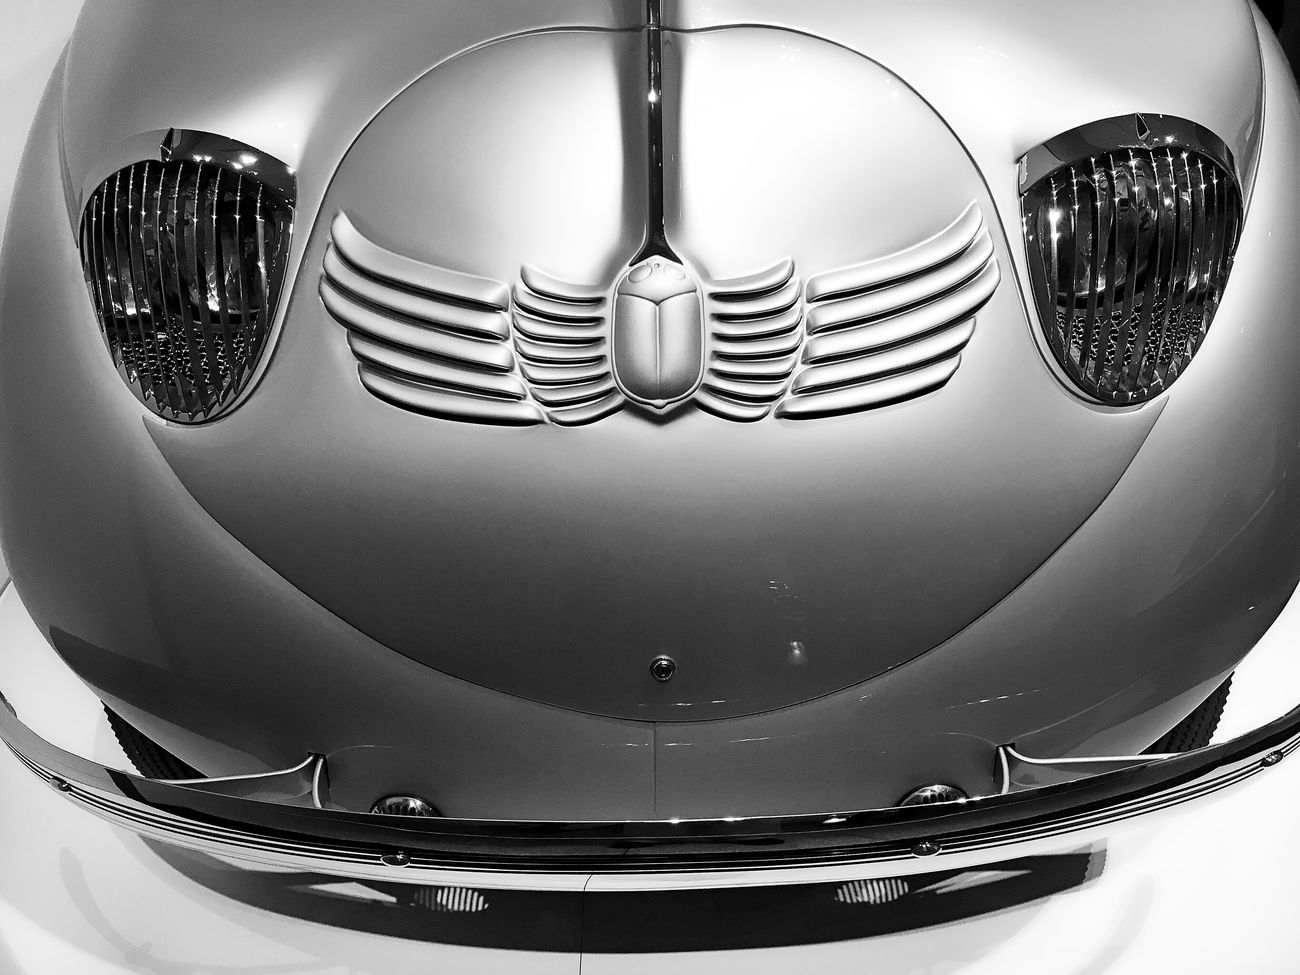 Transportation Car Classic Car Silver  Vintage Retro Styled Collector's Car Chrome EyeEm Best Shots EyeEmNewHere Retro Style Scarab Retro Museum Piece Sculpted In Steel Sculpted Metal Art Deco Design Art Deco Classic Streamlined Industrial Design Retro Car Automobile Vintage Car Sculpted